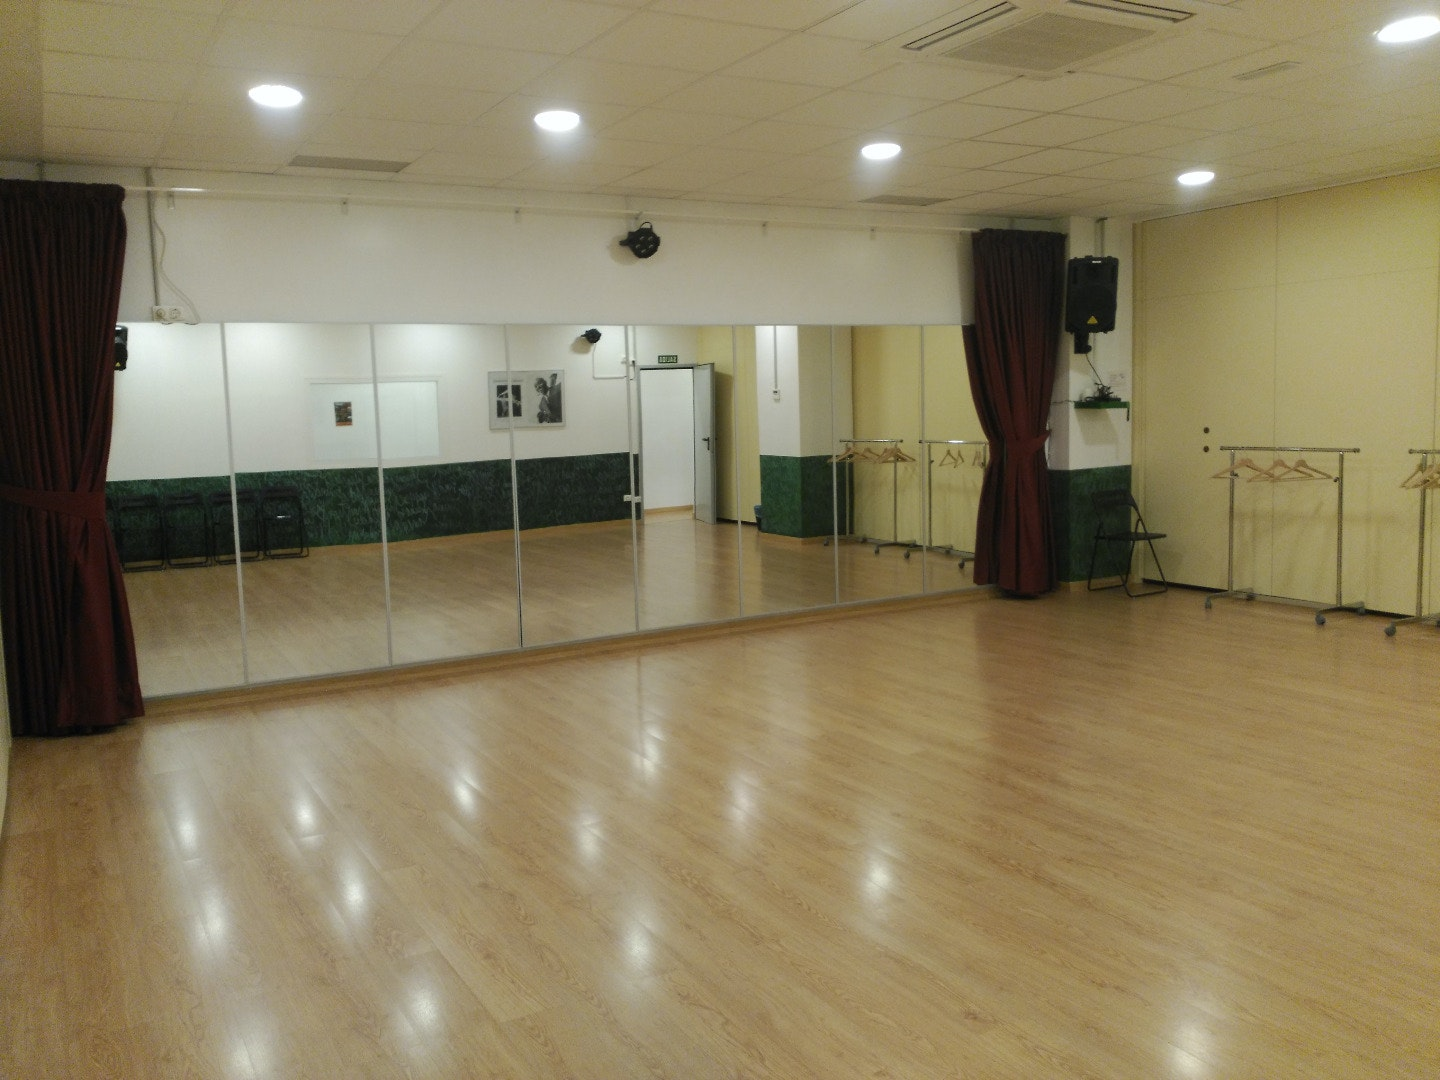 Picture 0 Deals for Gym Swing Maniacs / Dance Maniacs Santa Coloma de Gramanet Santa Coloma de Gramenet